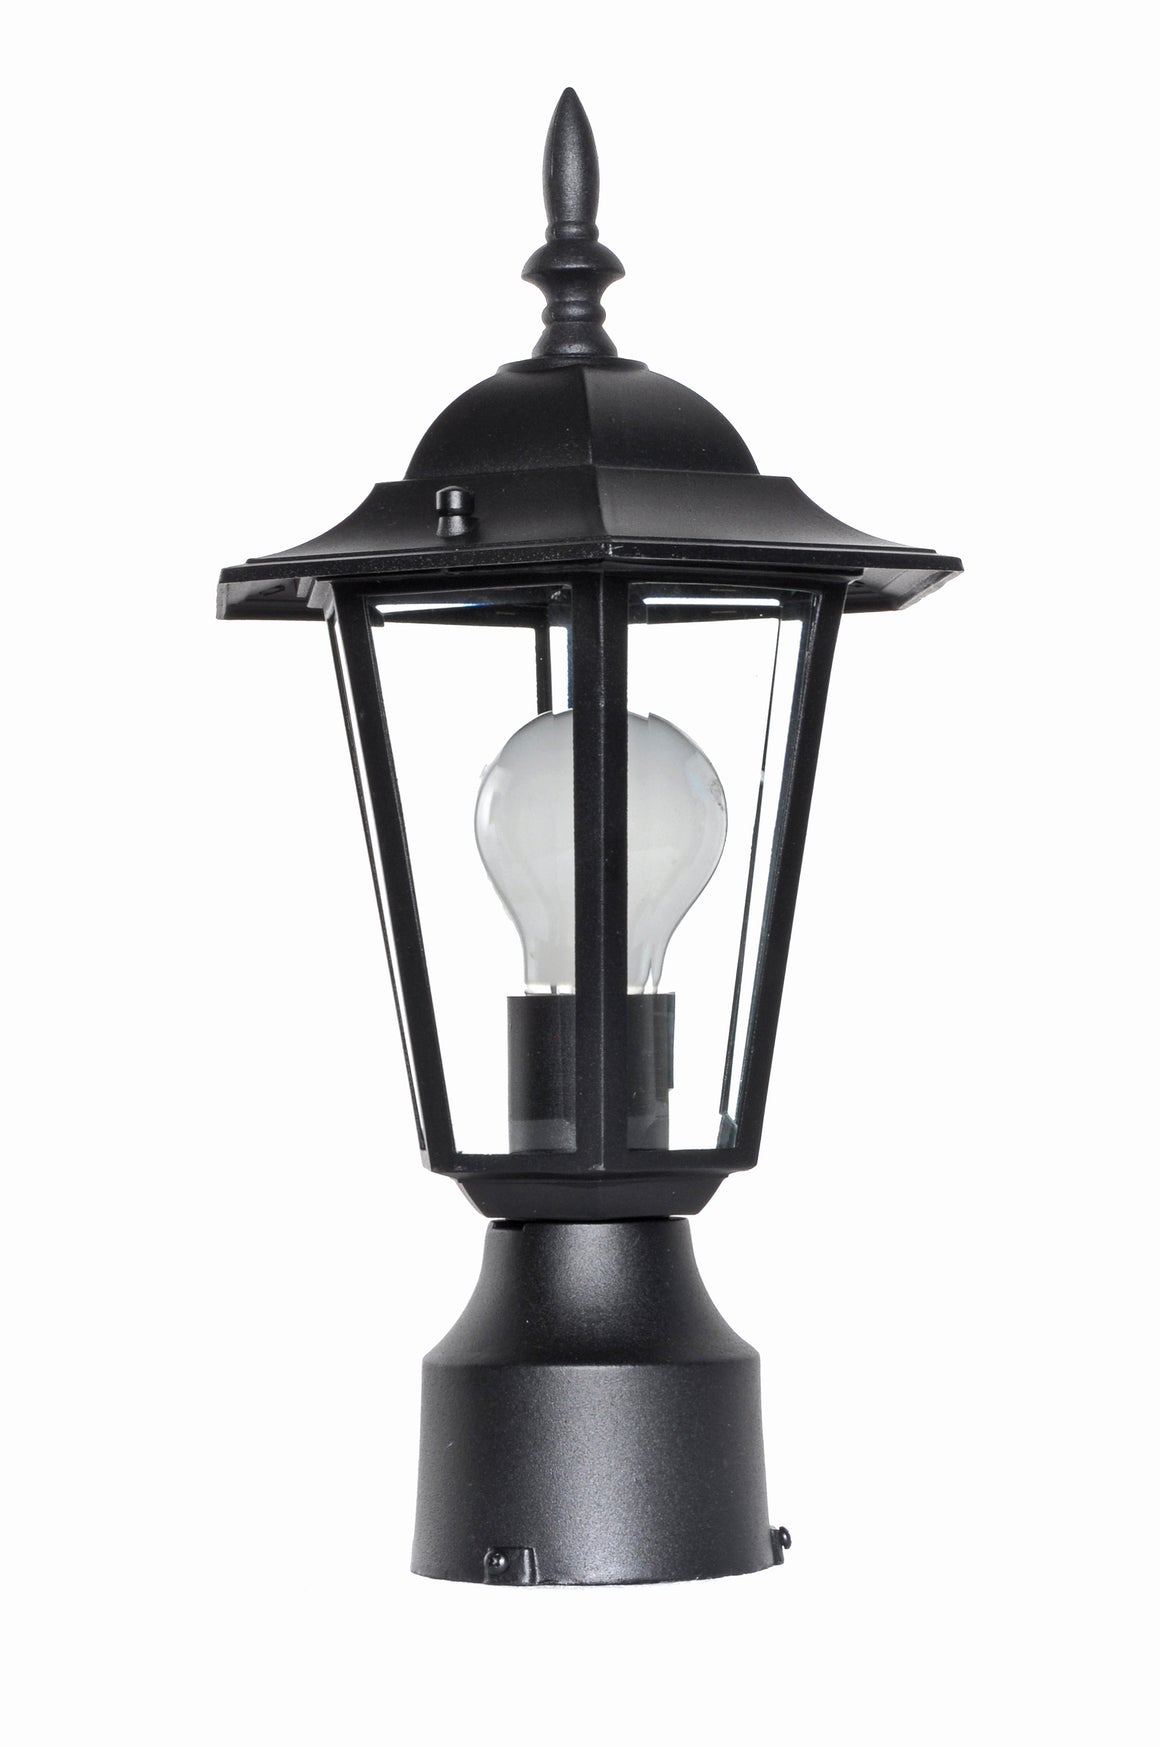 Builder Cast 1-Light Outdoor Pole/Post Lantern